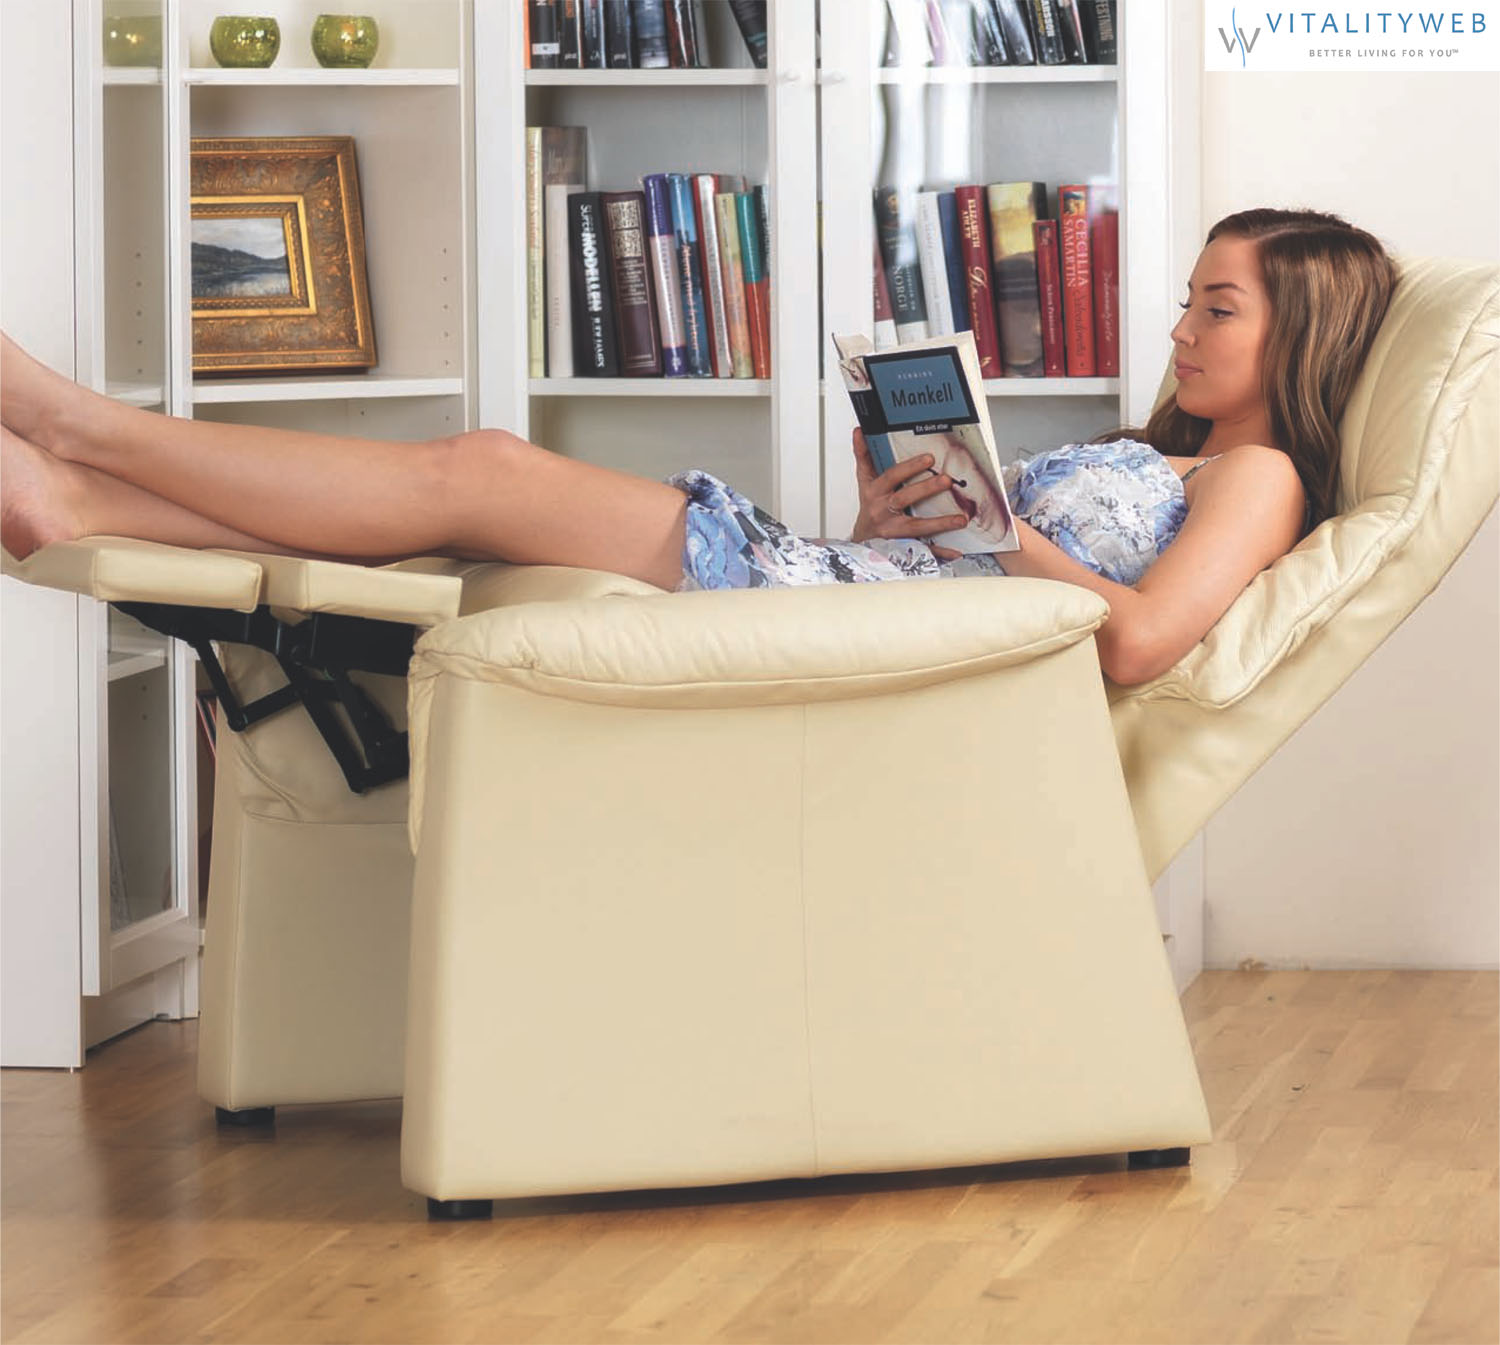 Fjords 855 Urke Ergonomic Swing Zero Gravity Recliner Relaxor Chair Norwegian Scandinavian Lounger